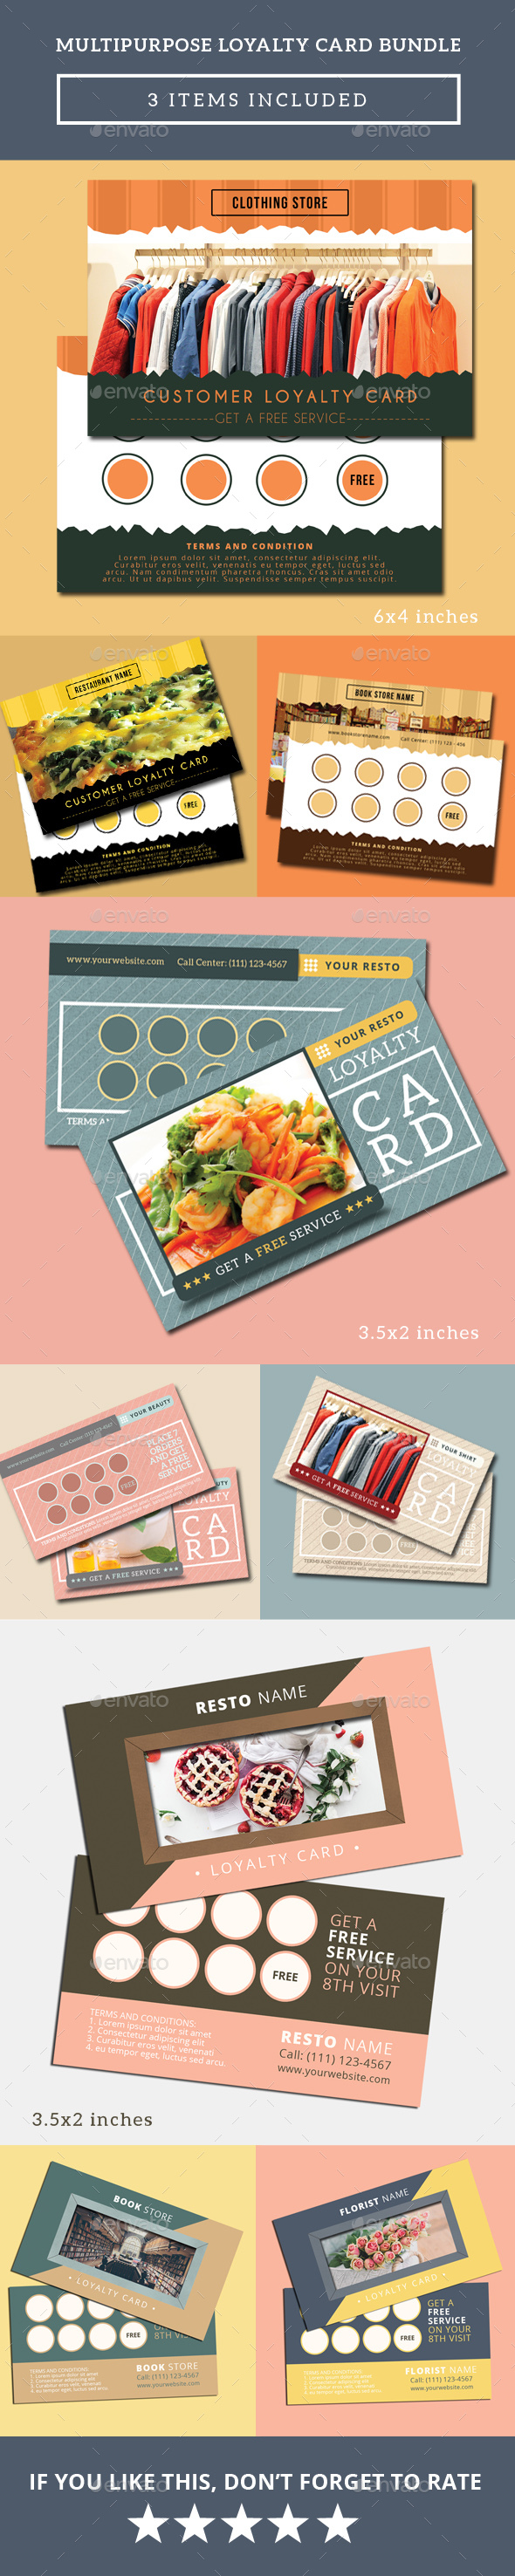 Multipurpose Loyalty Card Bundle - Loyalty Cards Cards & Invites